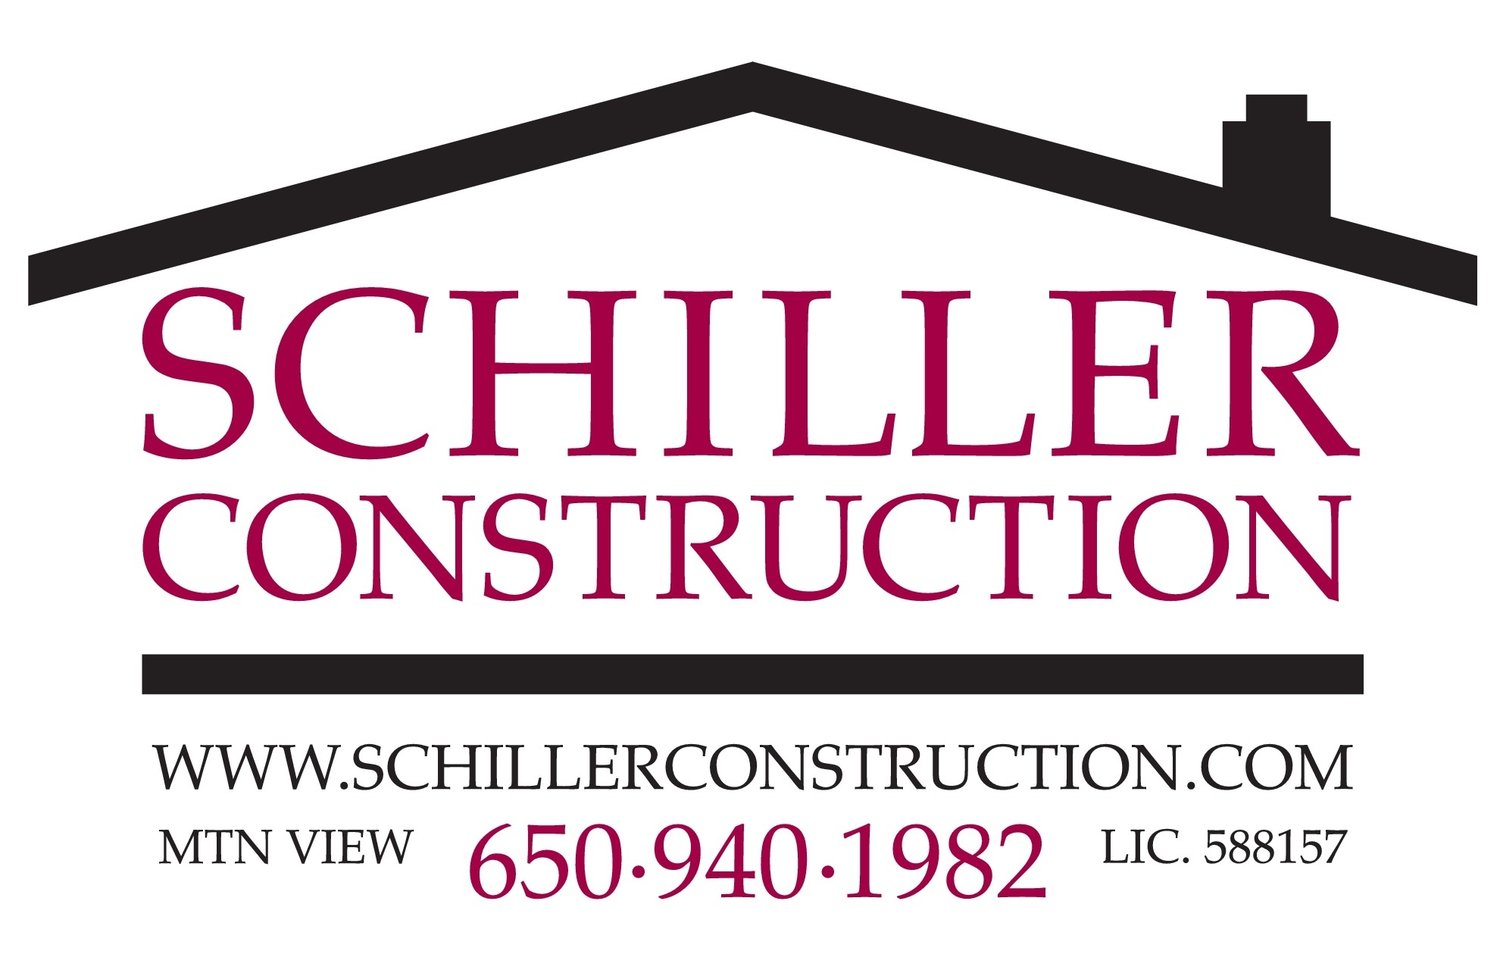 Schiller Construction Inc.